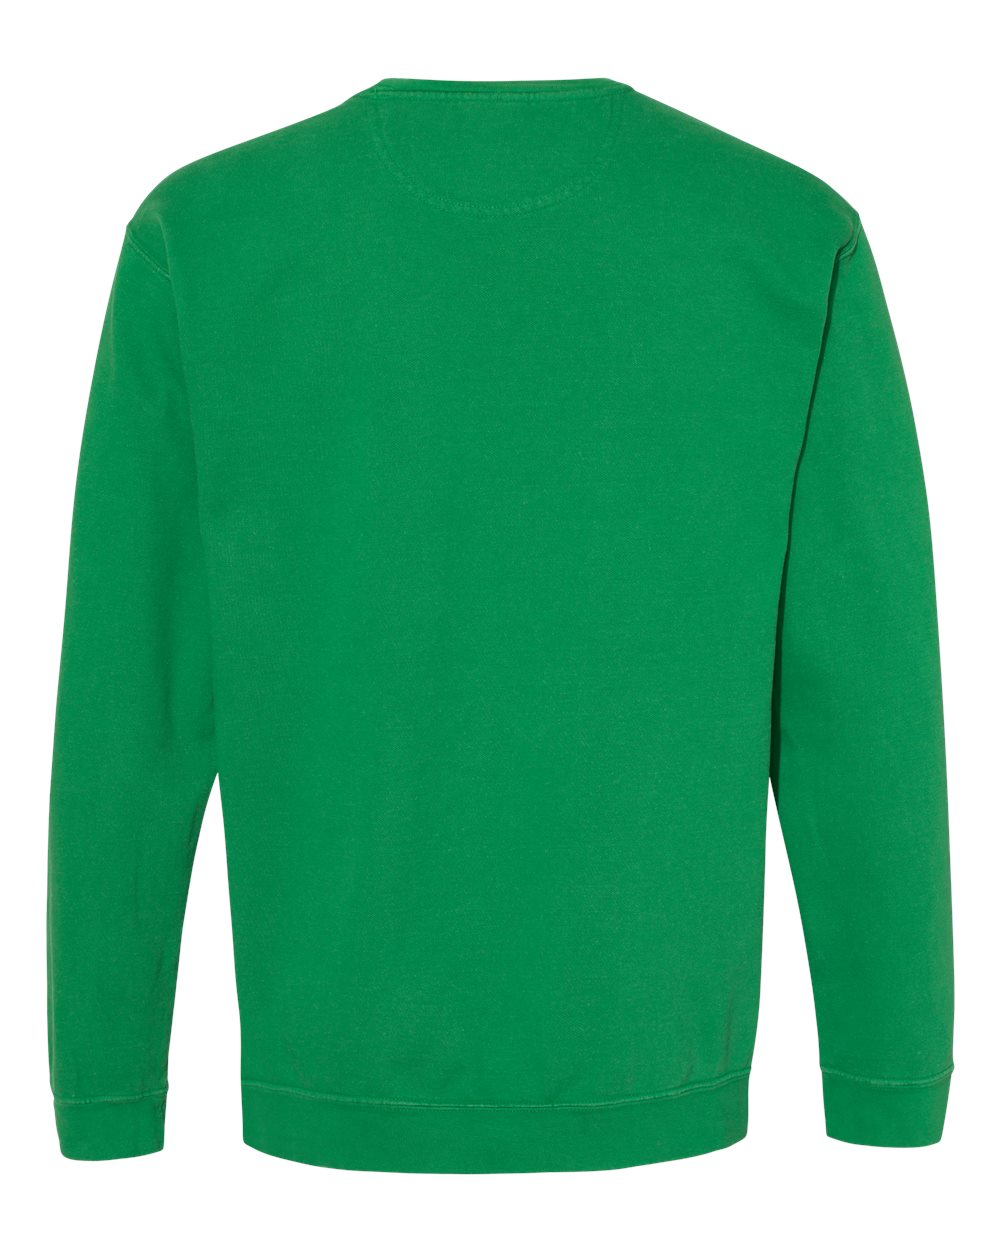 Comfort-Colors-Mens-Garment-Dyed-Ringspun-Crewneck-Sweatshirt-1566-up-to-3XL miniature 22